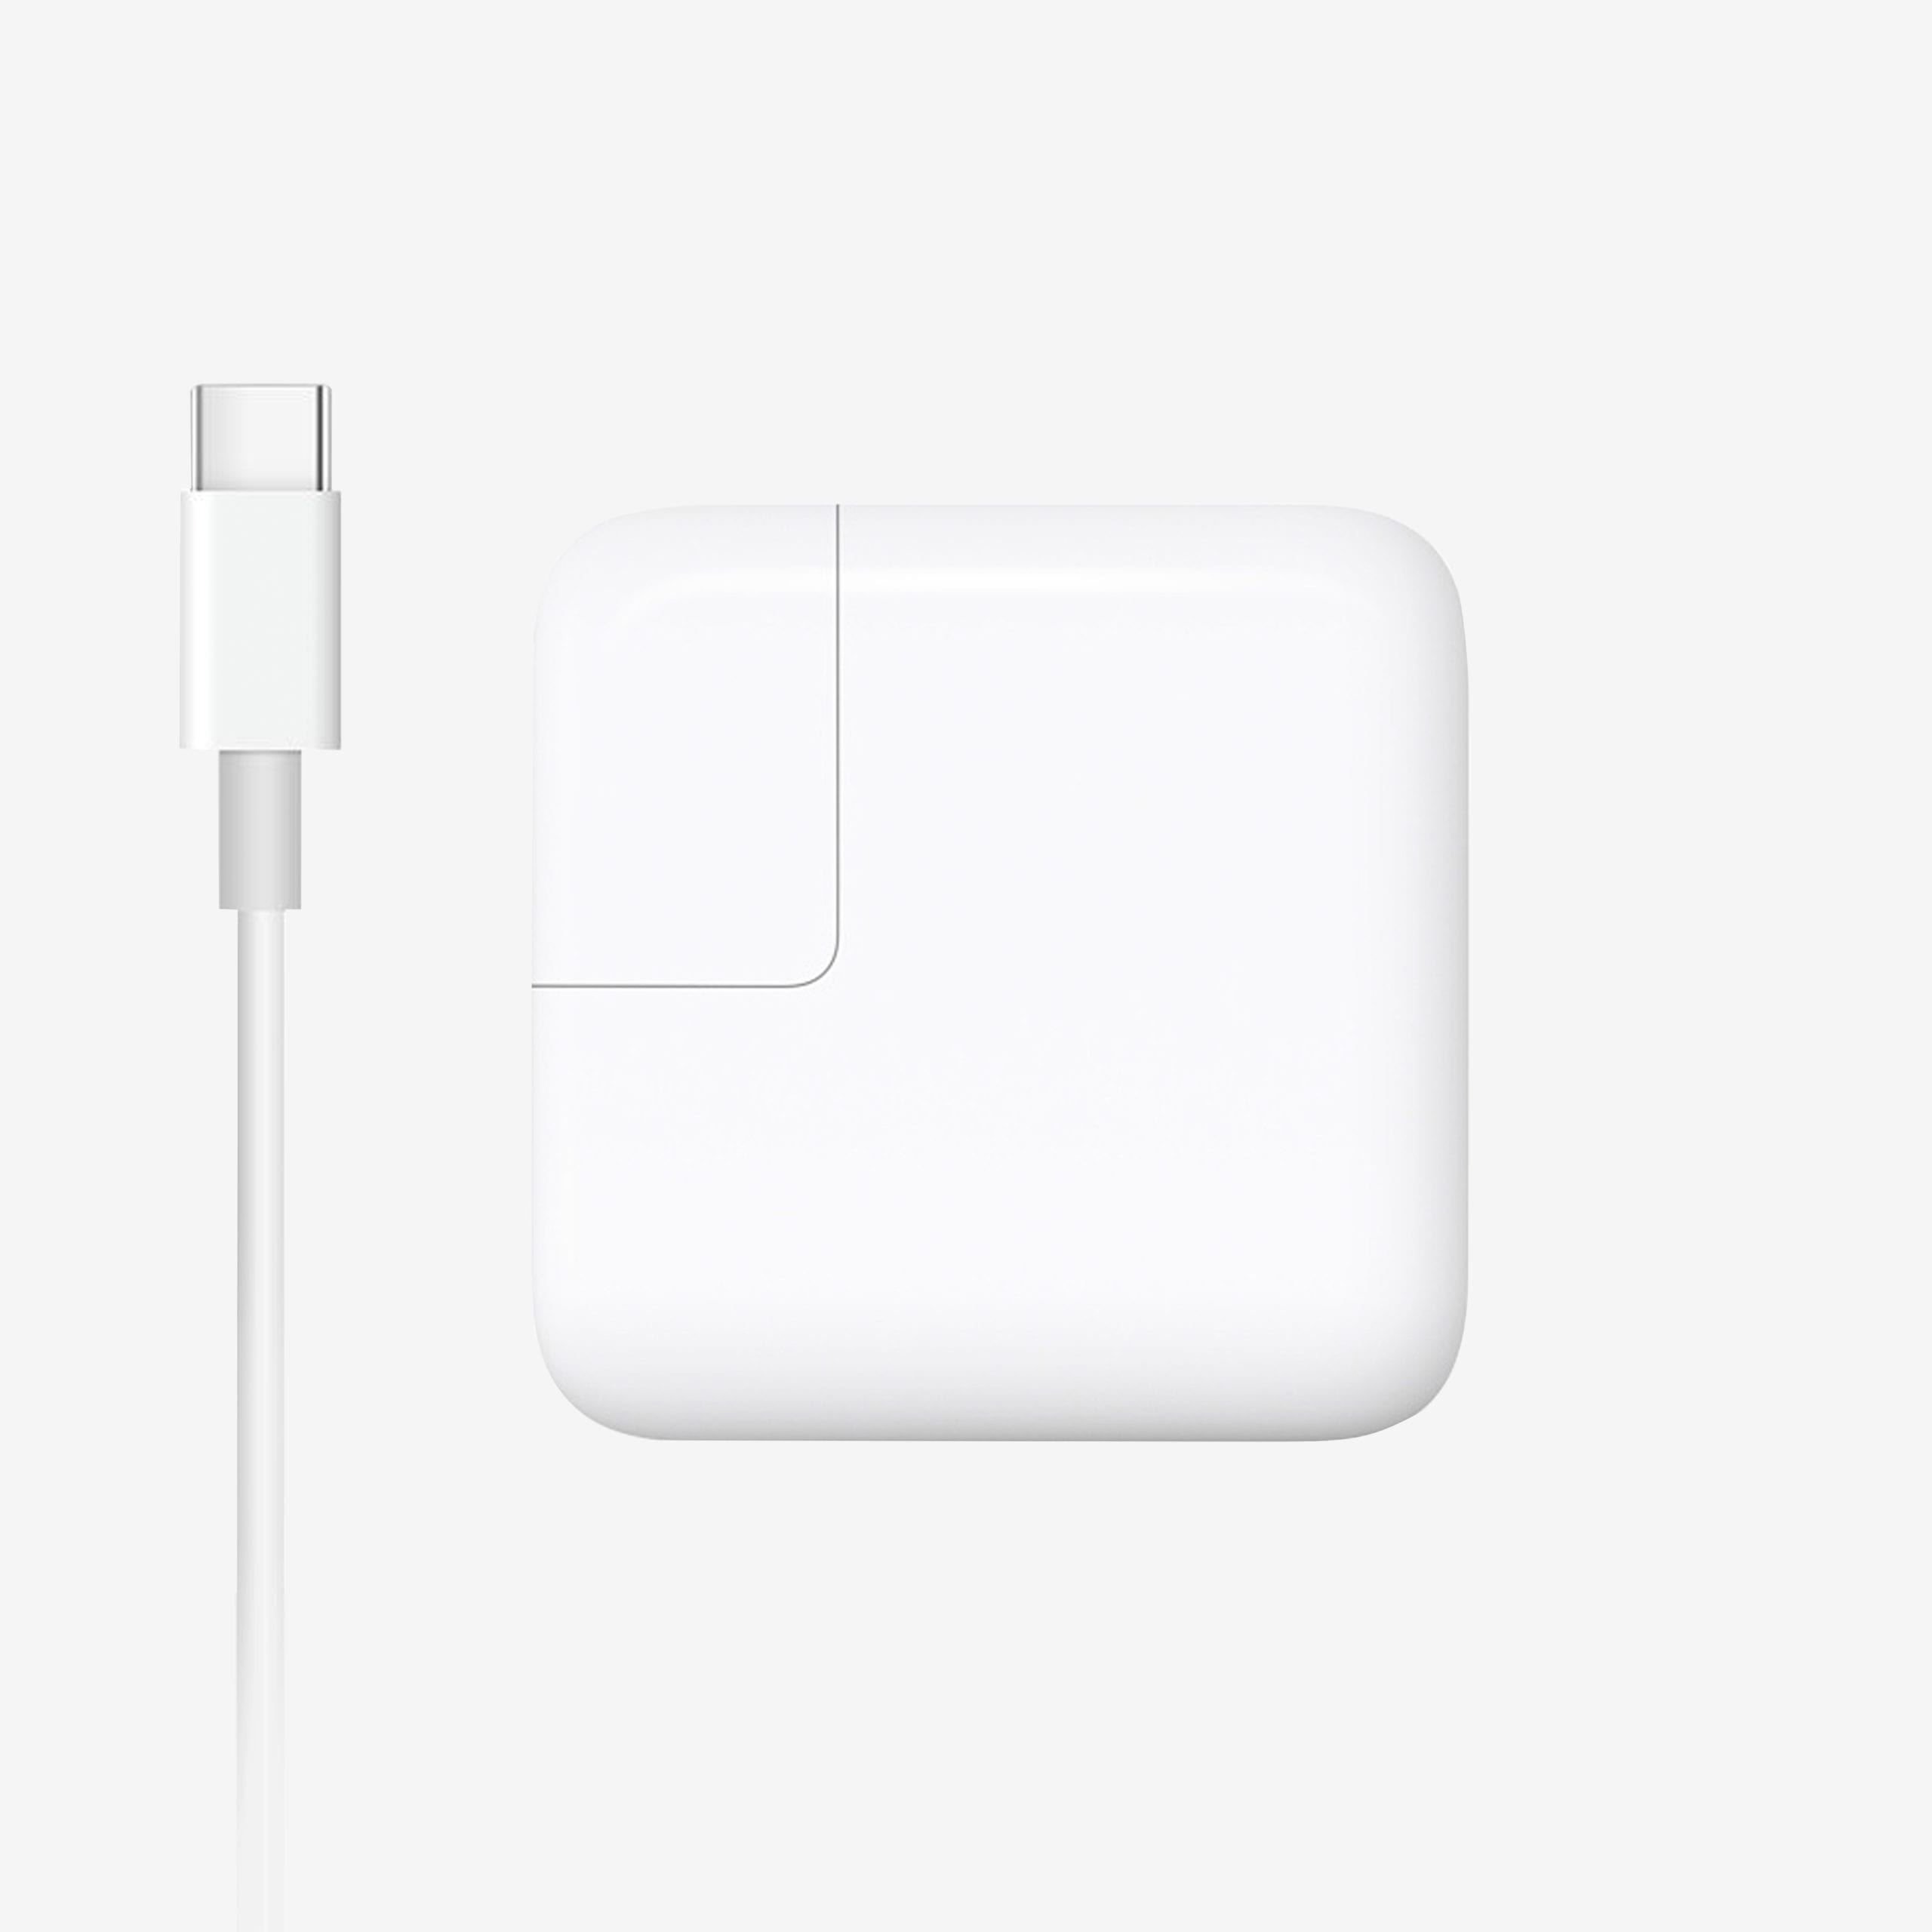 1 x 1x USB‑C Power Adapter and Cable